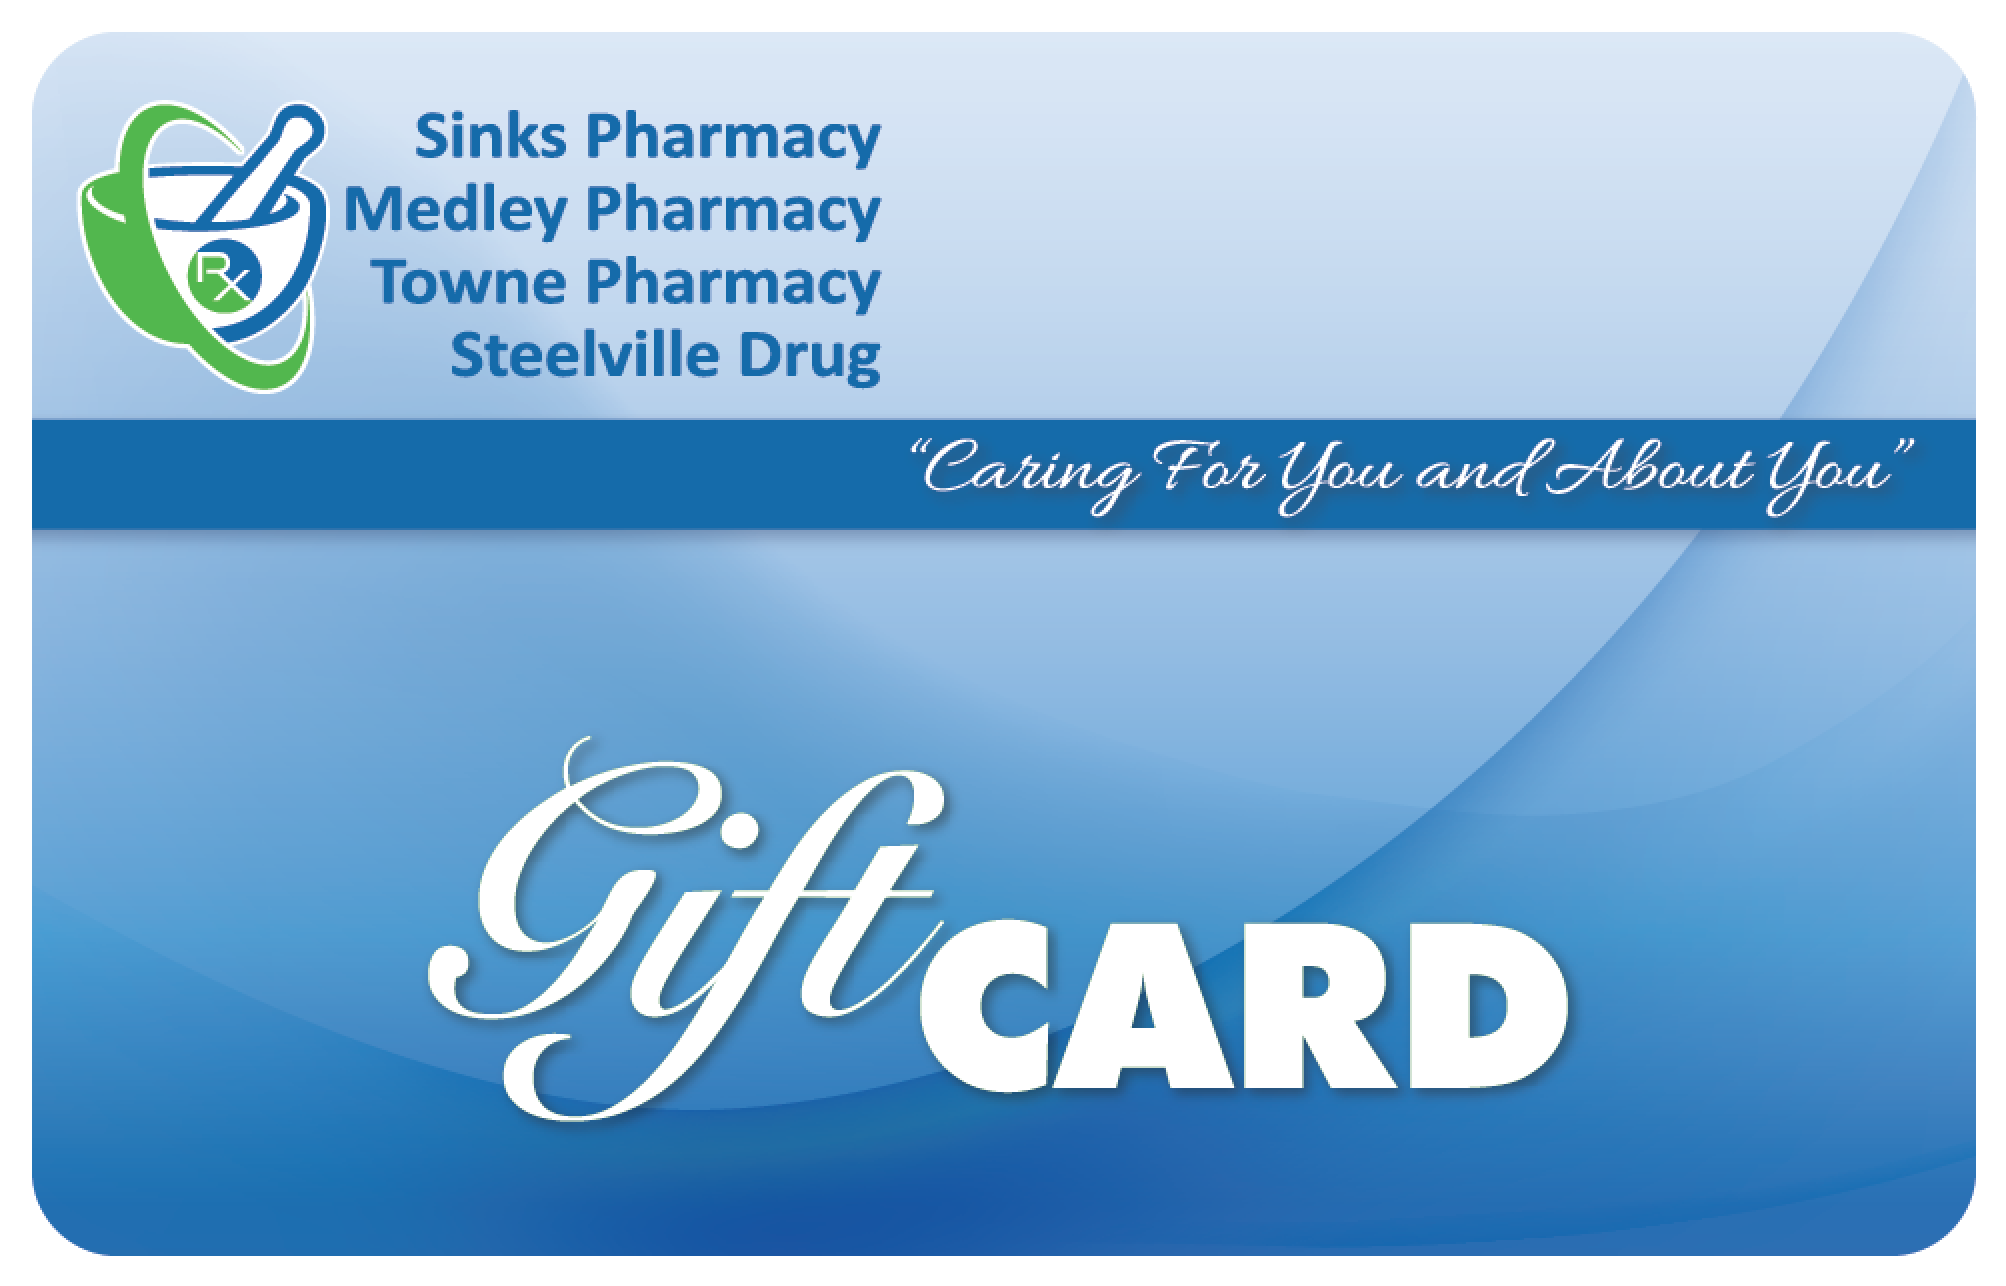 Gifts & Gift Cards,